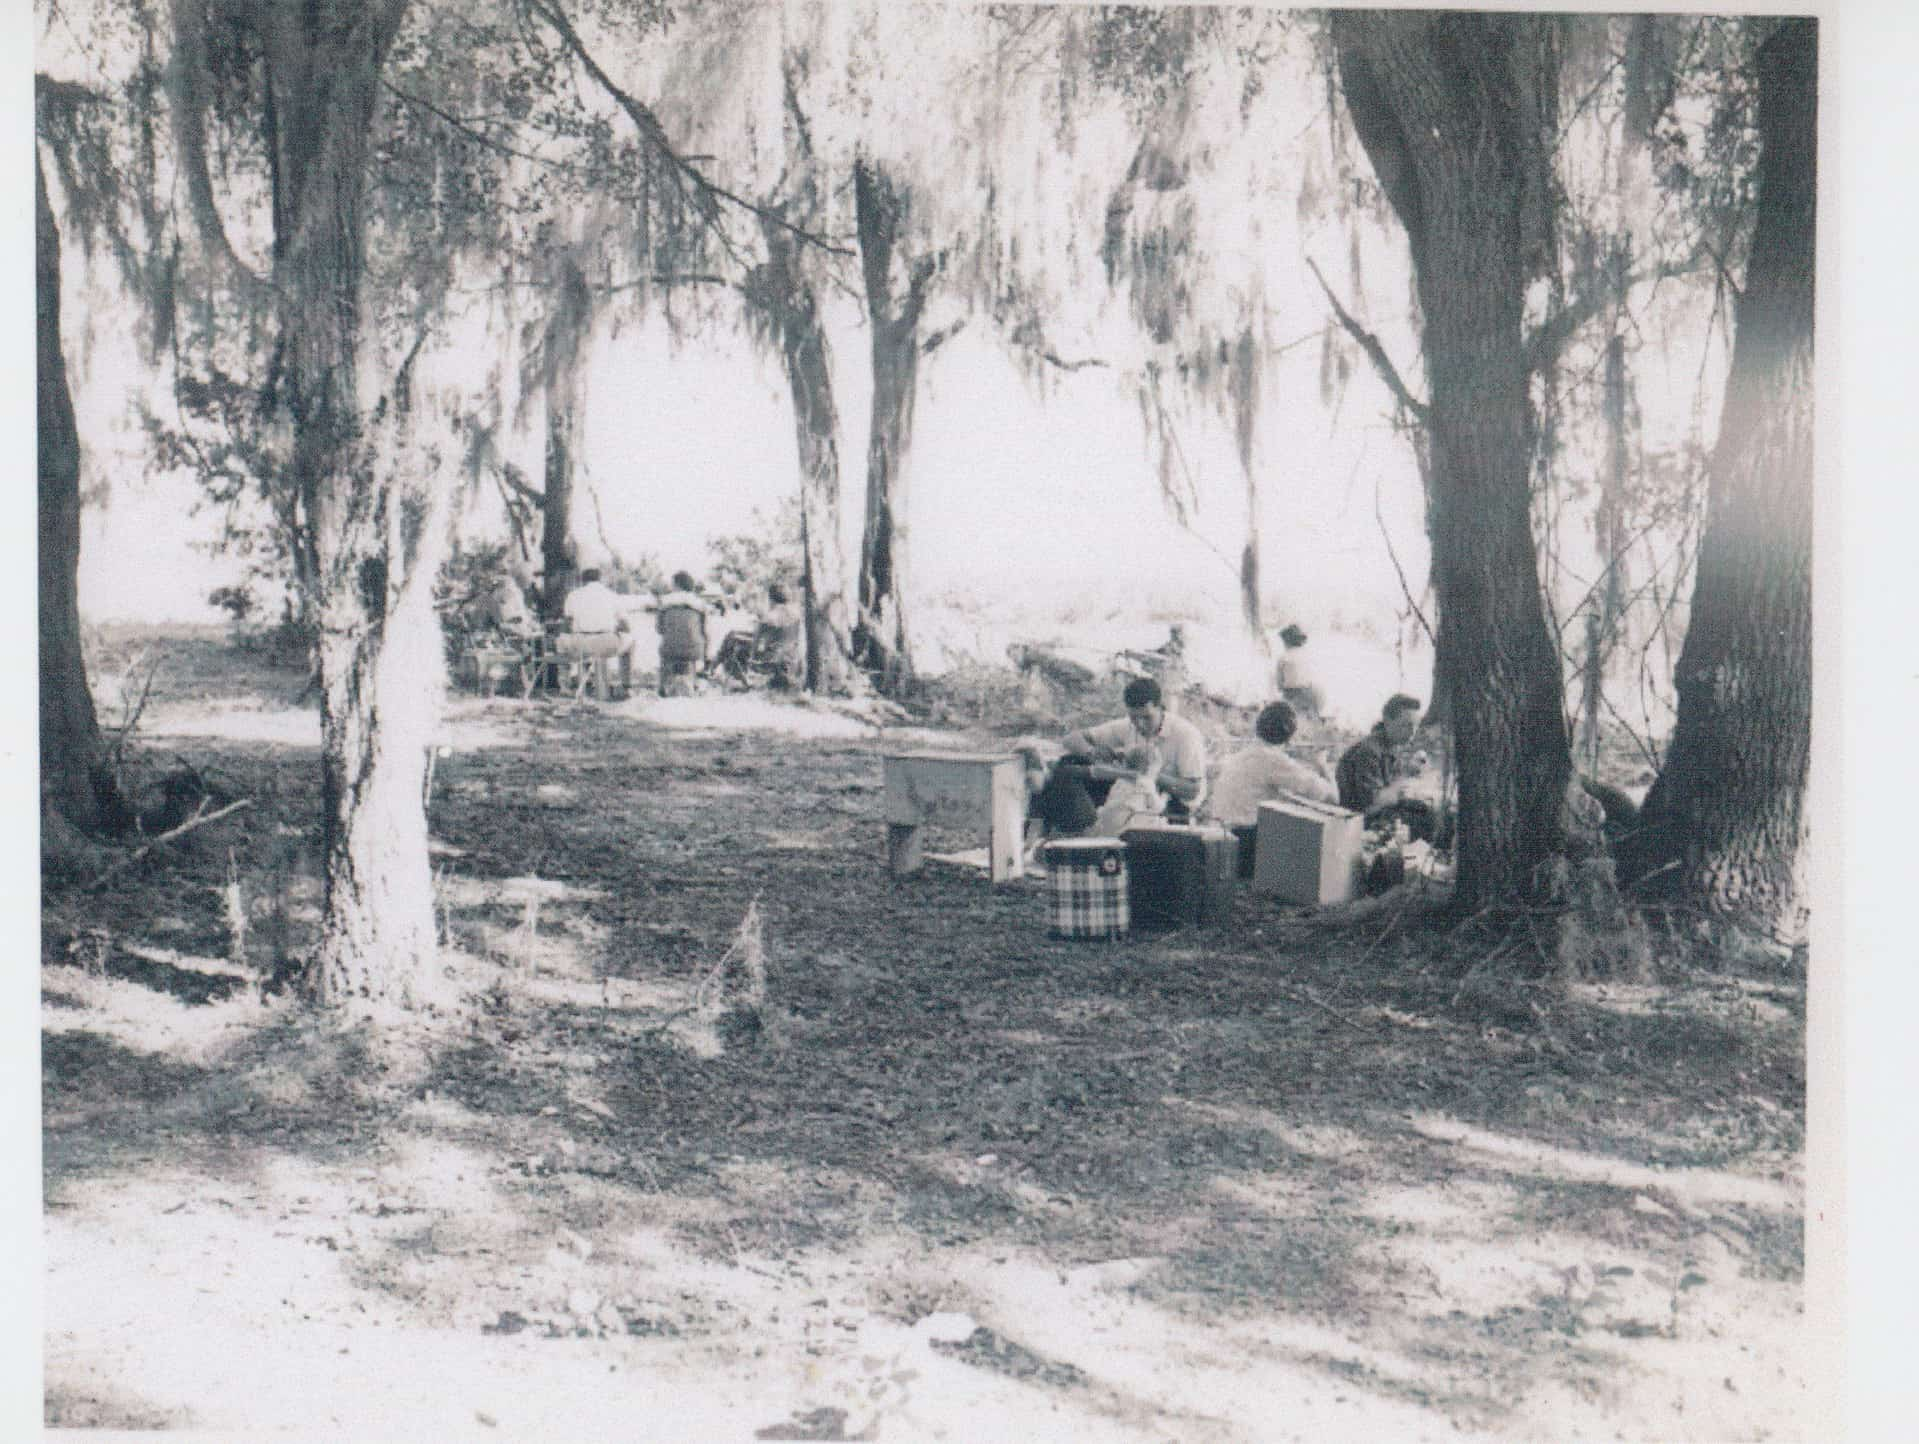 Old photo showing the history of Honey Creek.